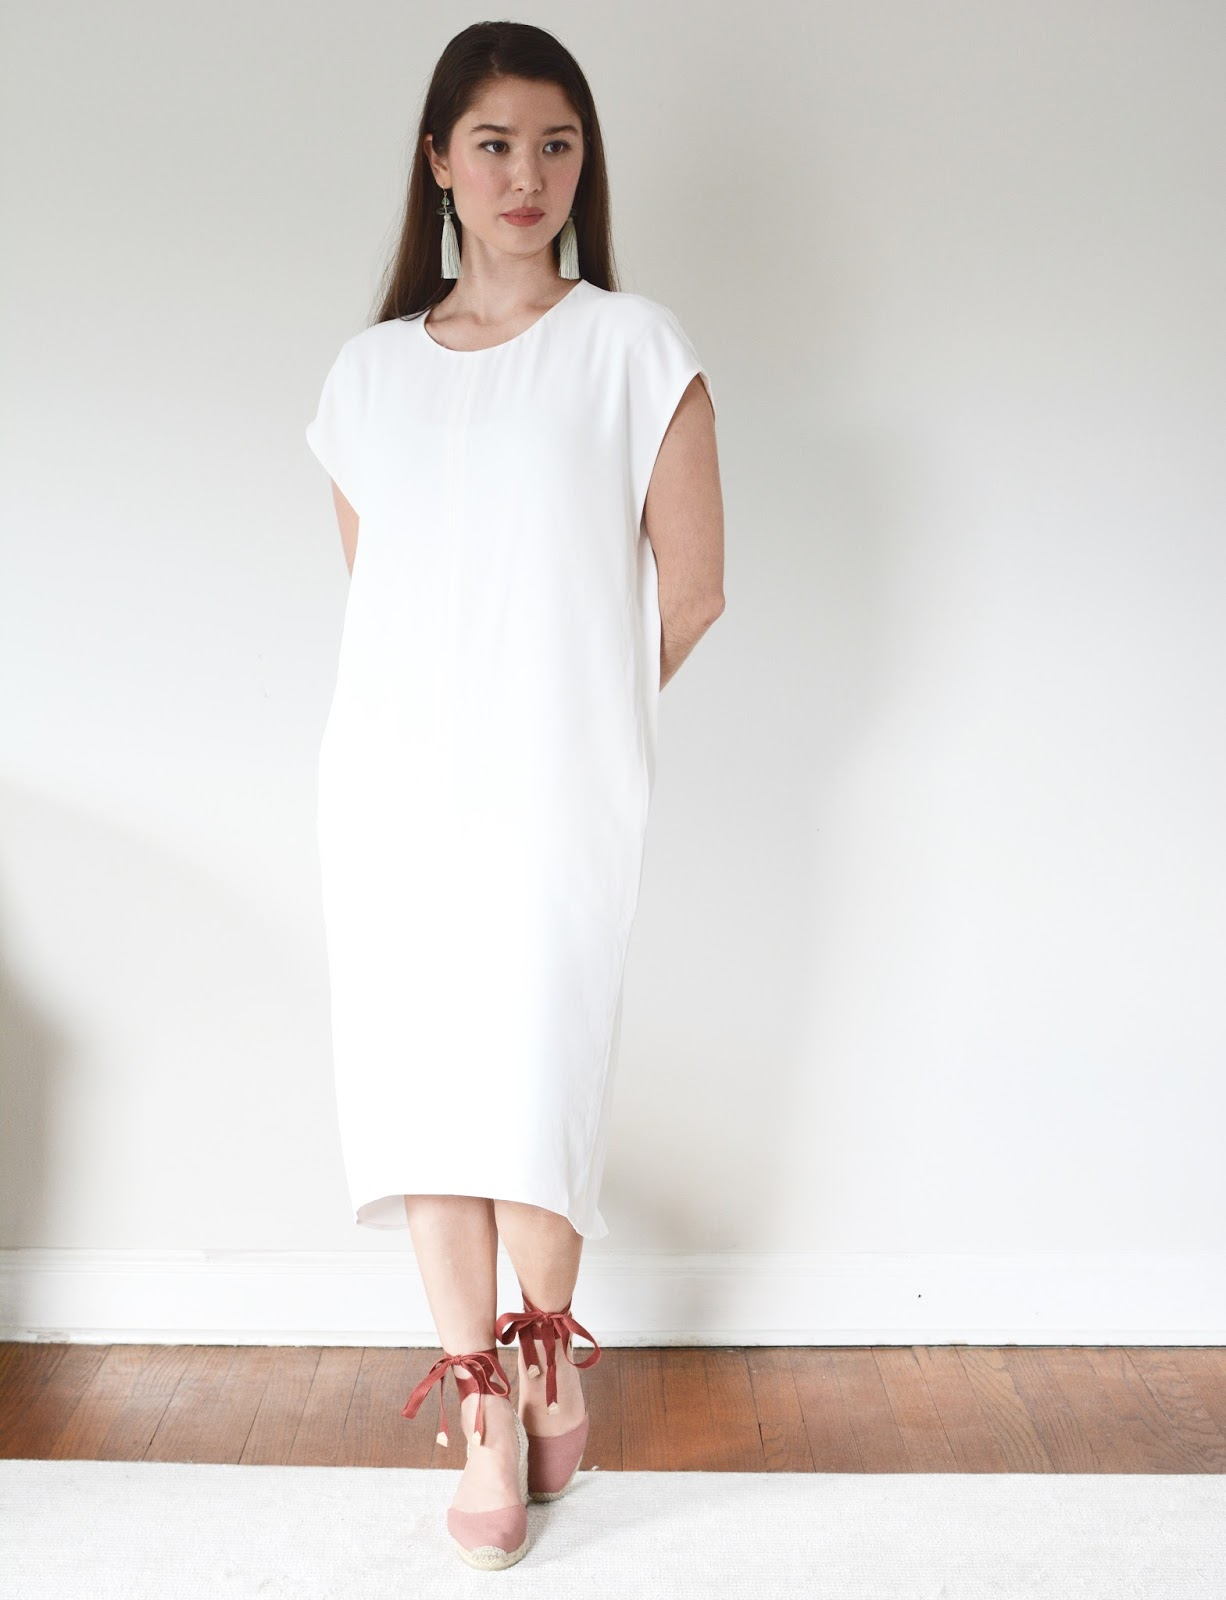 Everlane GoWeave Cocoon Dress Review Photos Petite